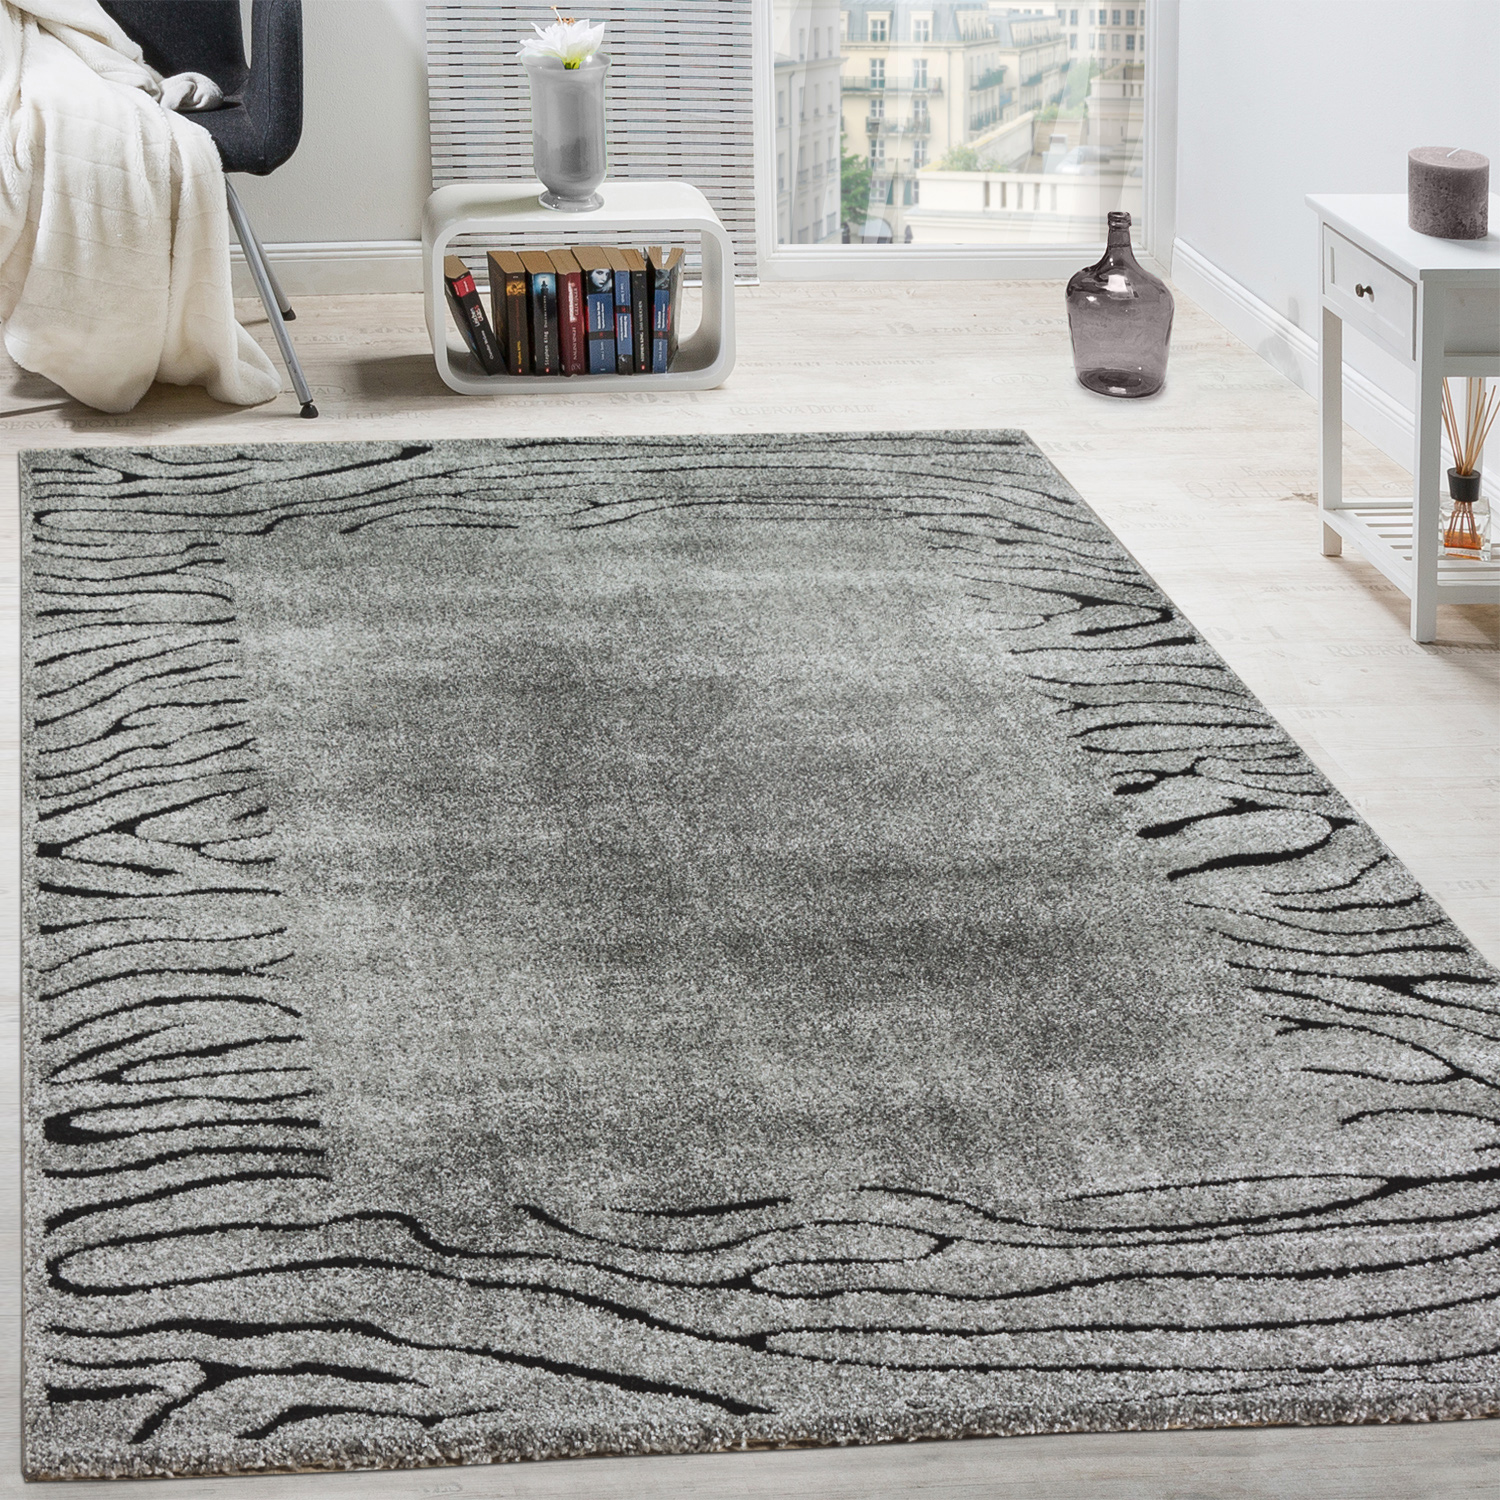 l gant tapis de cr ateur safari style poils ras contours d coup s gris noir tapis tapis poil ras. Black Bedroom Furniture Sets. Home Design Ideas